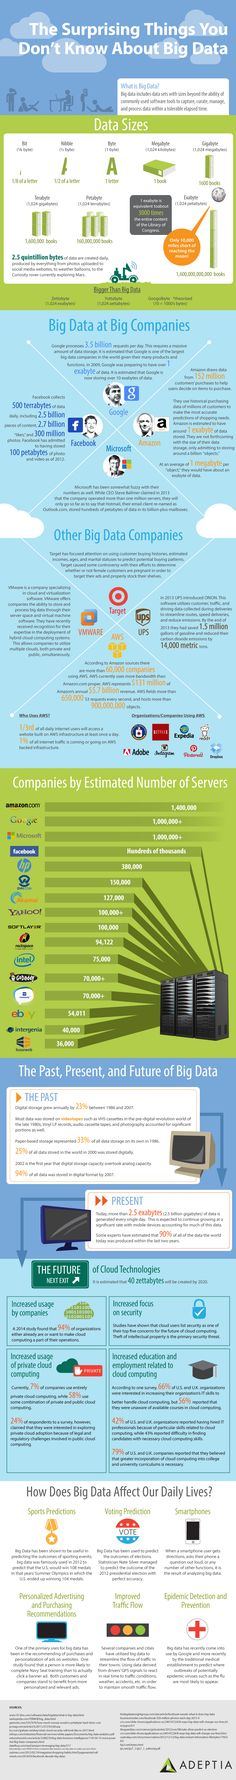 Big Data Fact Guide Infographic